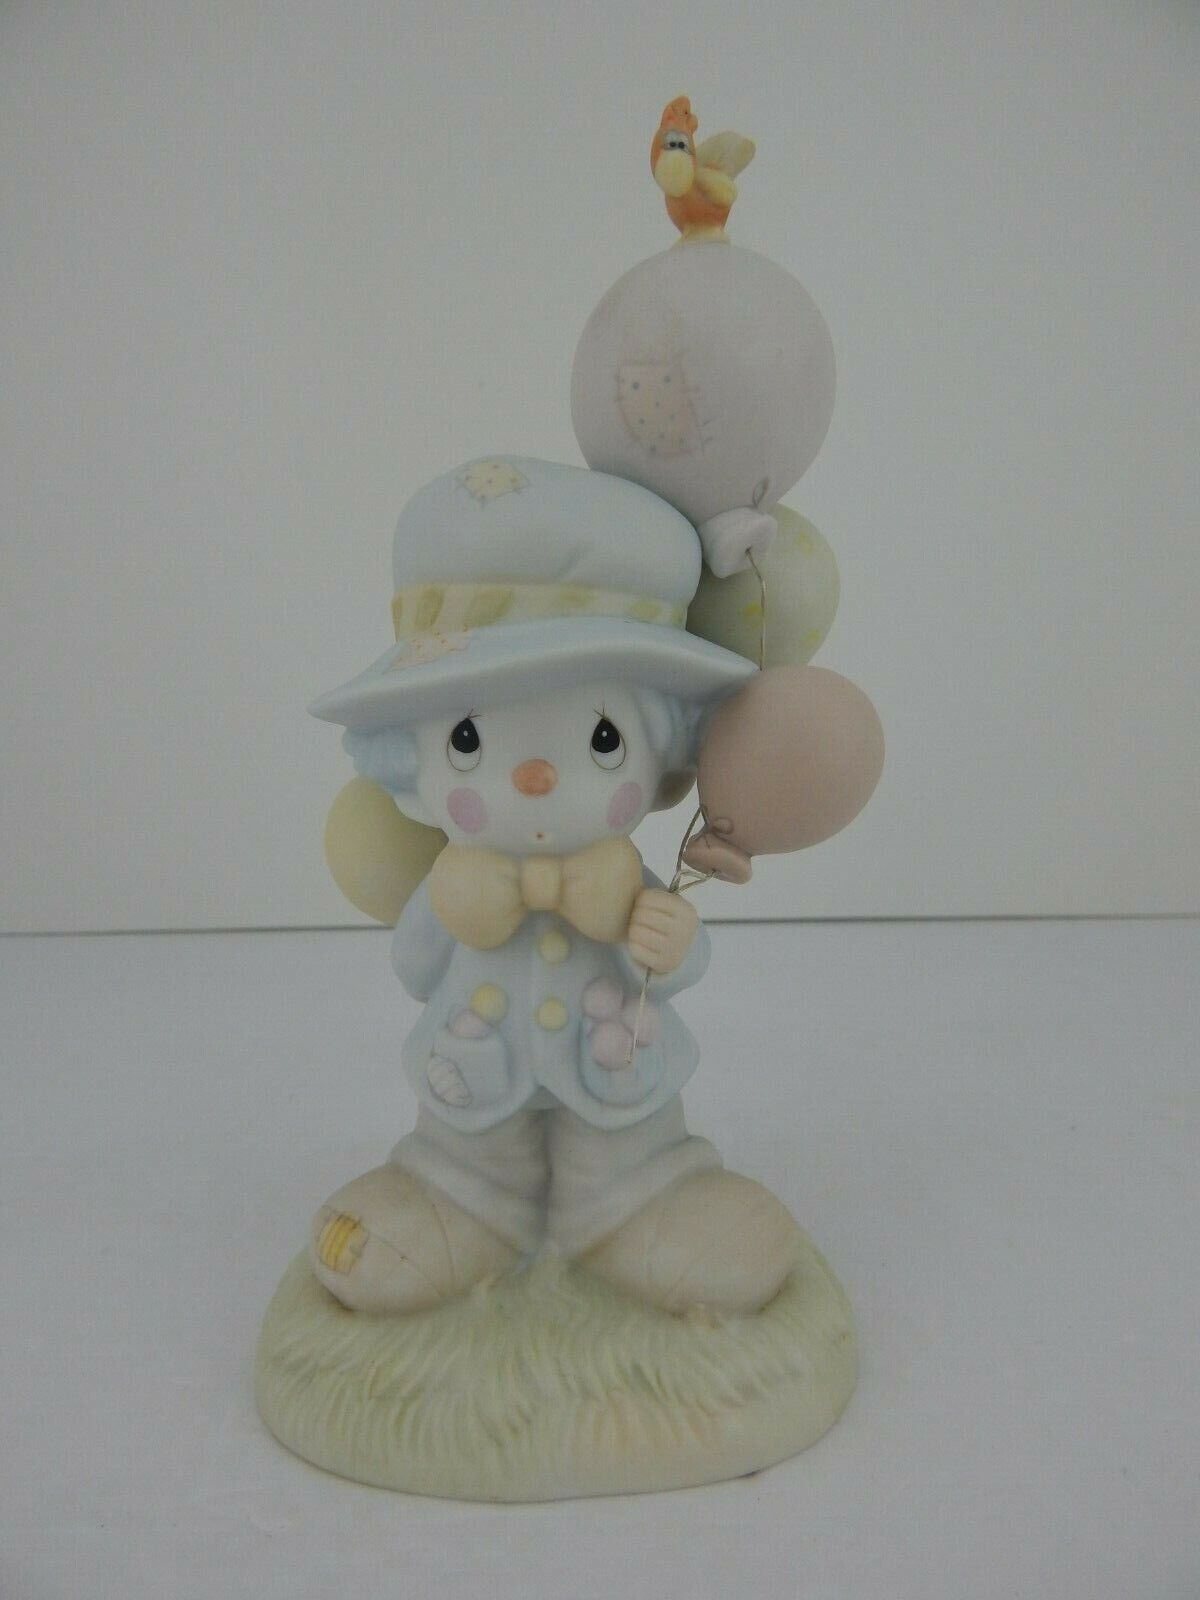 Enesco Precious Moments I Get A Bang Out Of You Figurine #12262 w/Box (733)